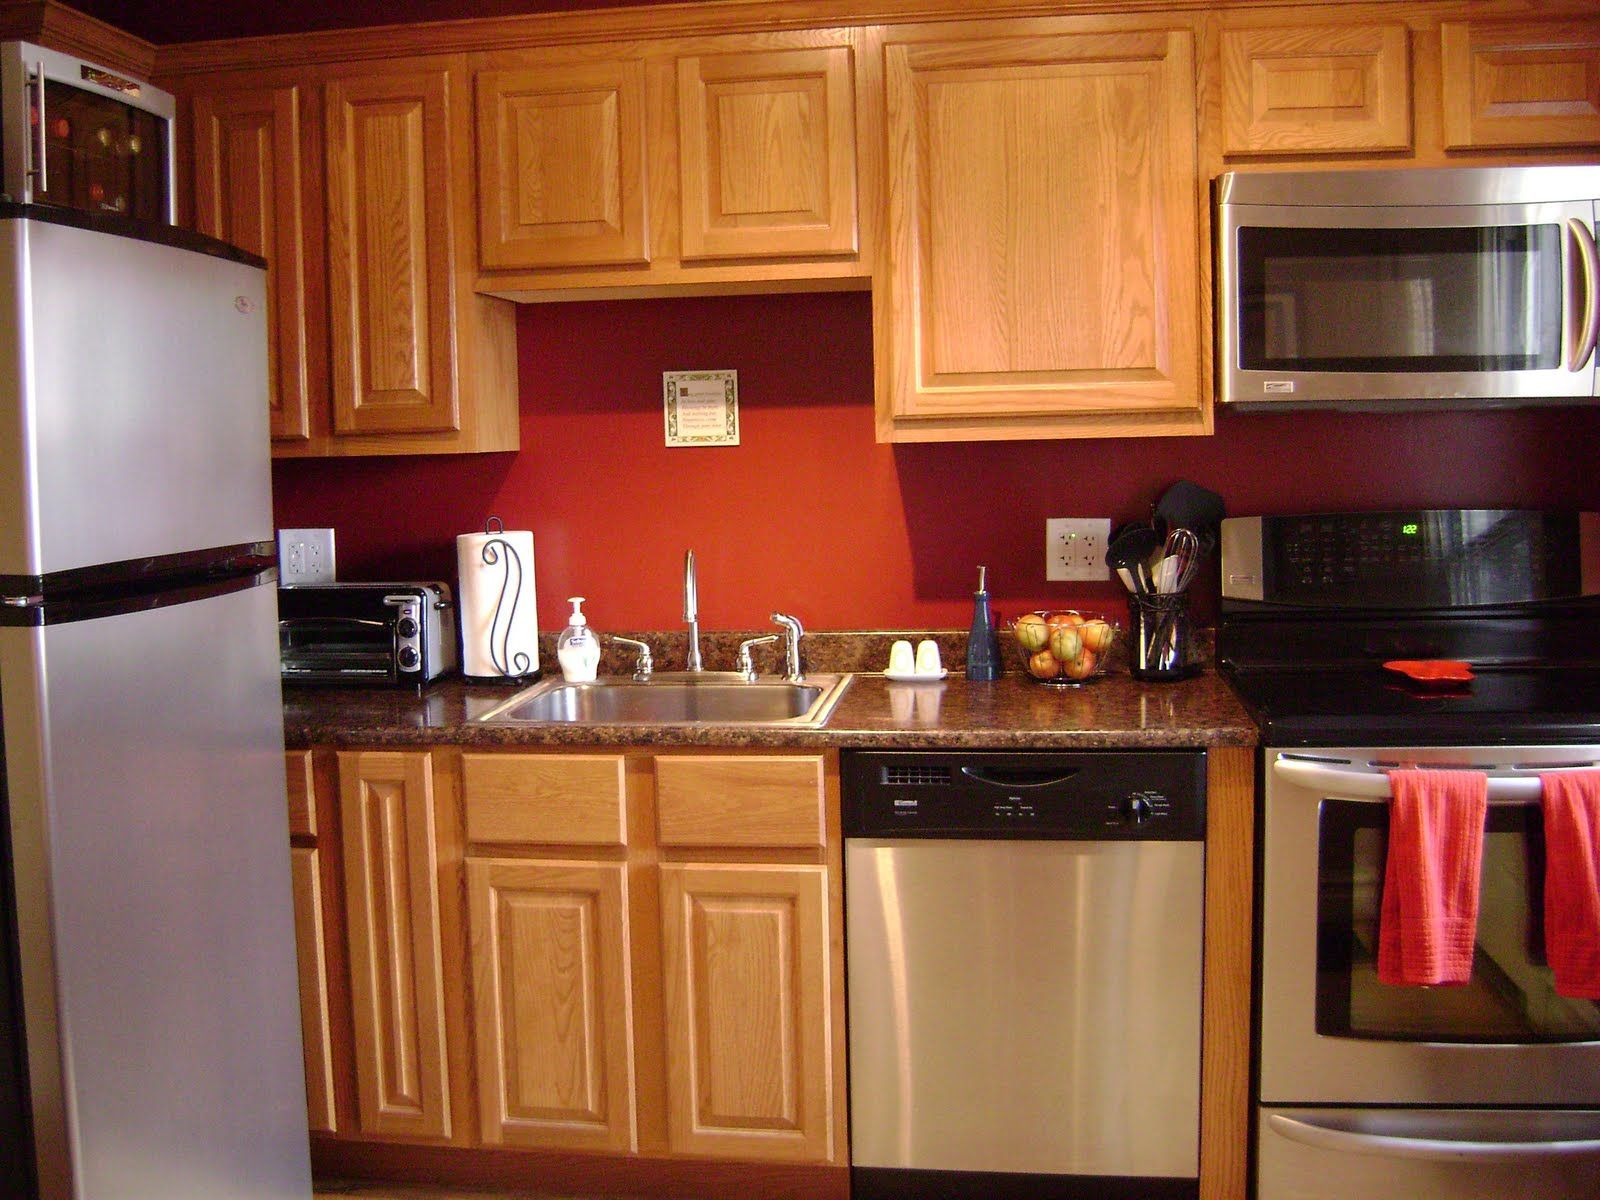 kitchen wall color ideas with oak cabinets | design idea | kitchen